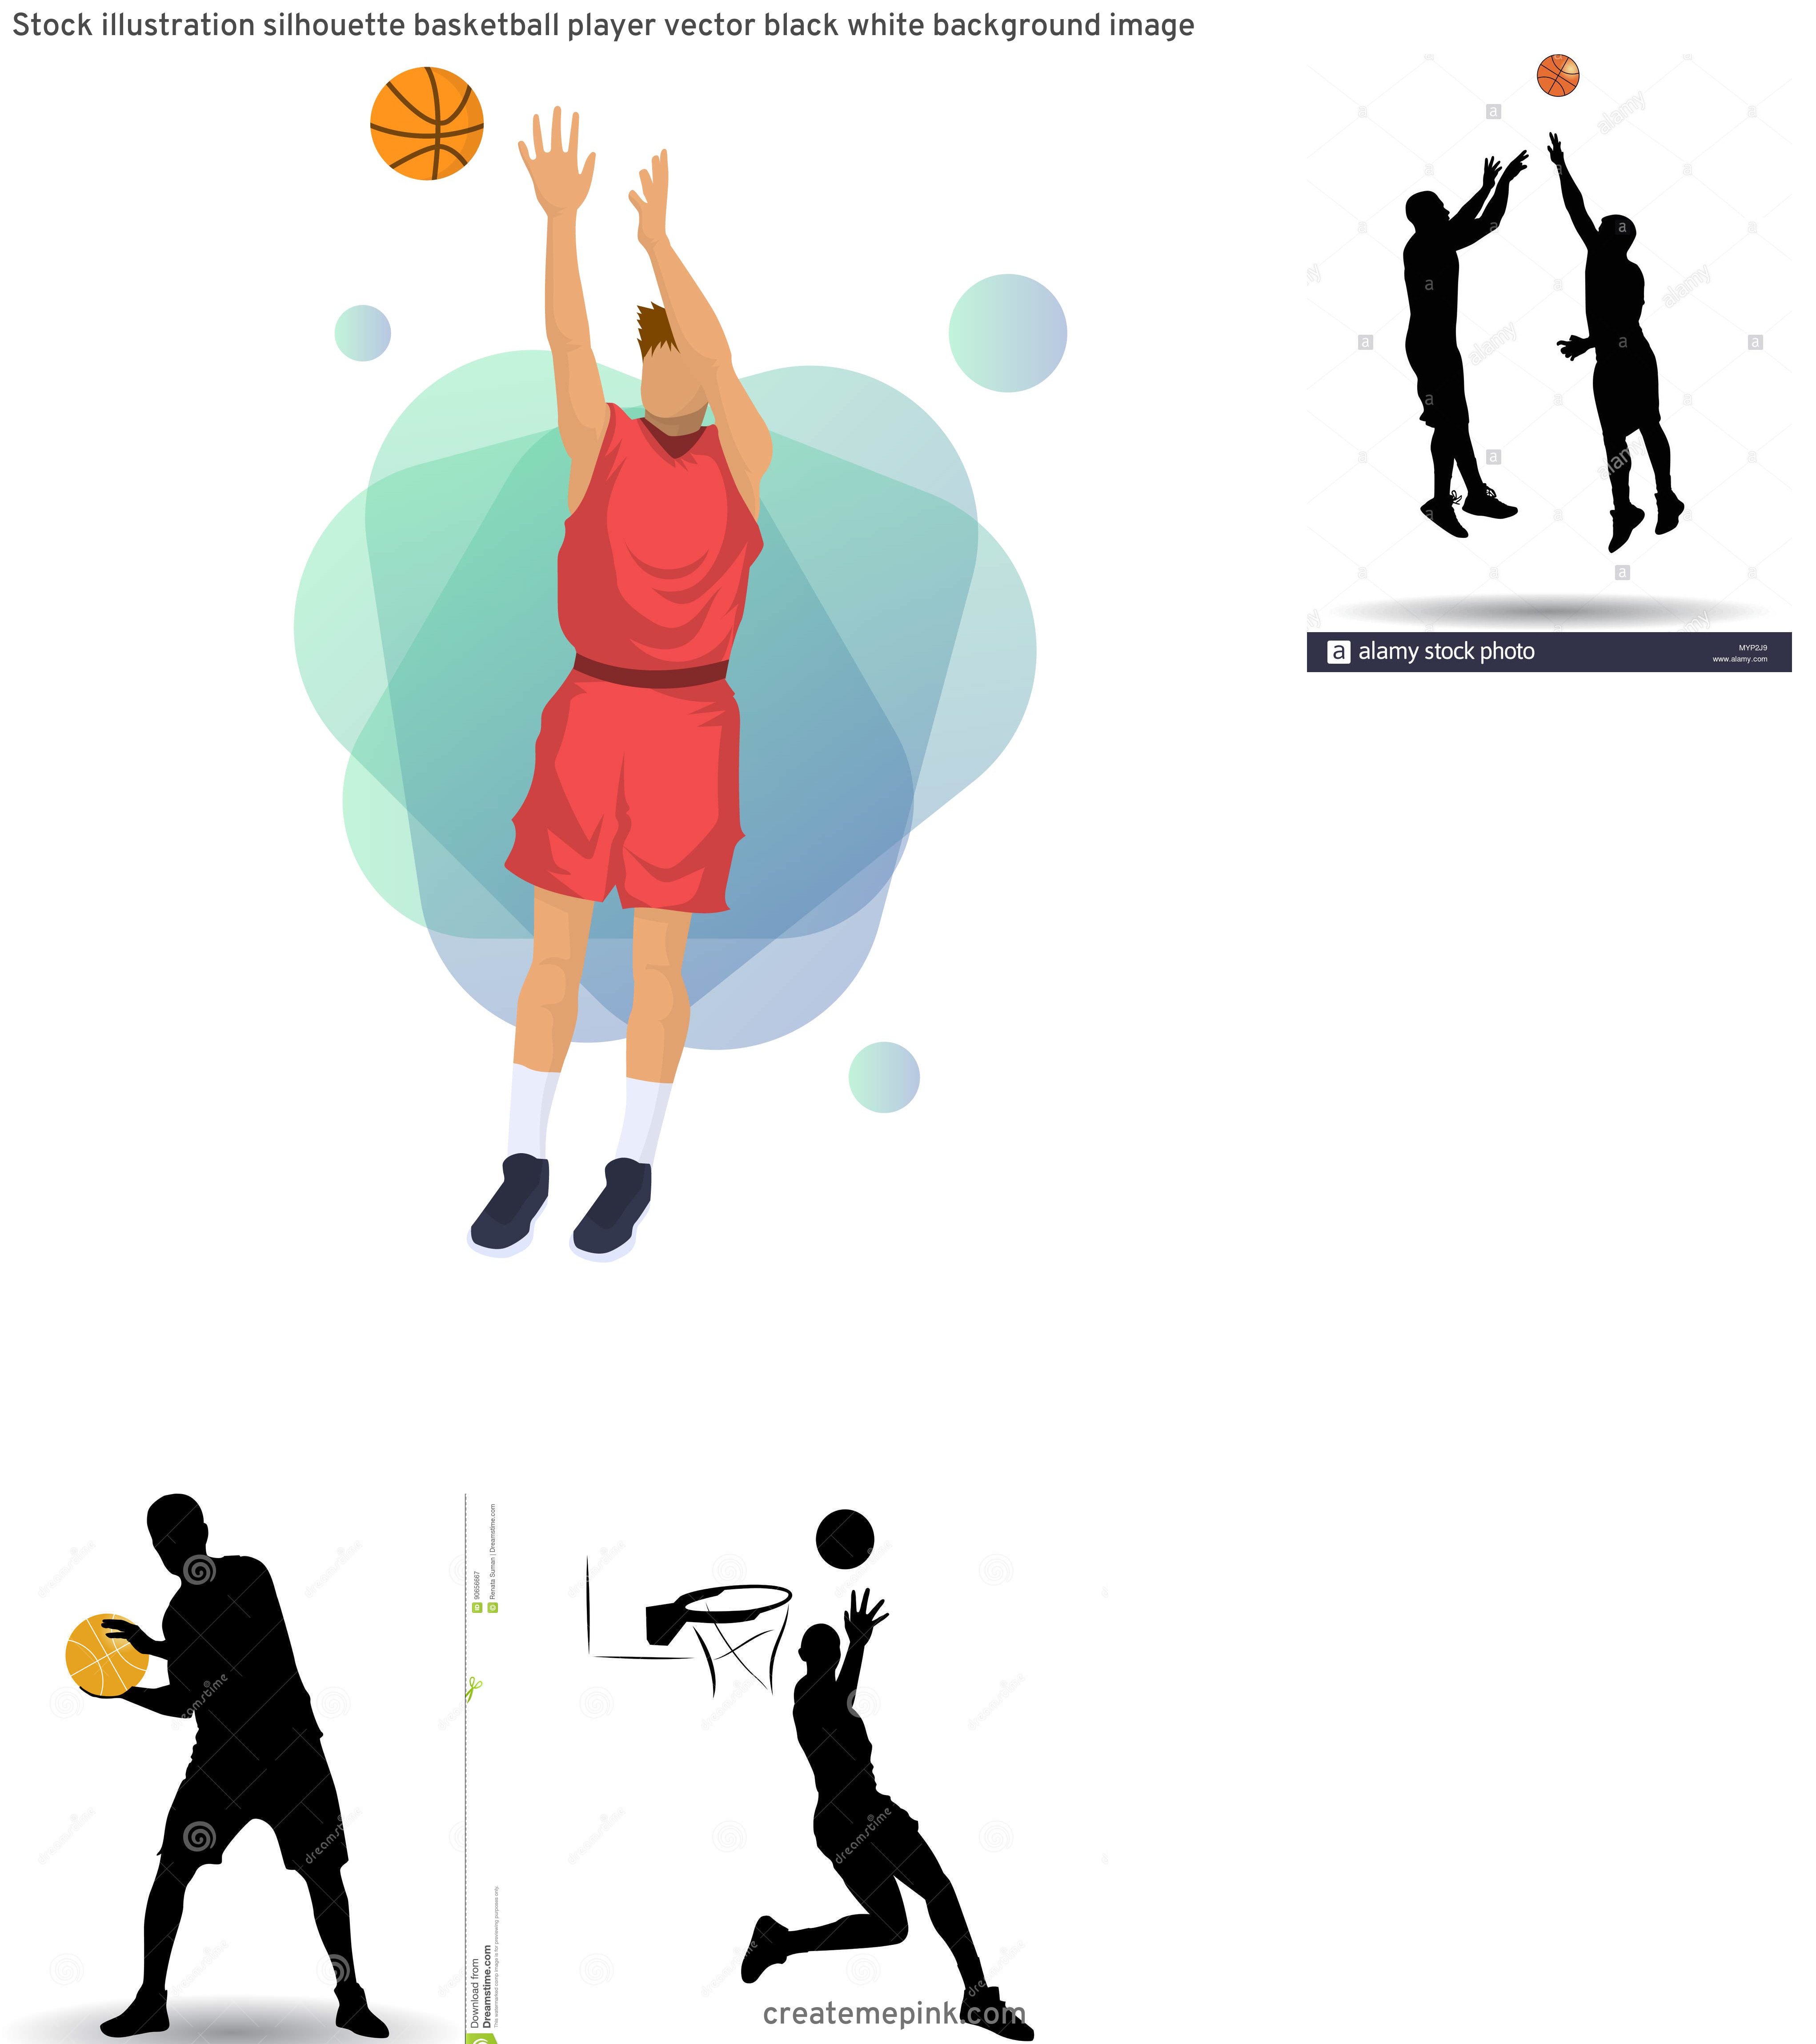 Basketball Player Silhouette Vector Illustration: Stock Illustration Silhouette Basketball Player Vector Black White Background Image